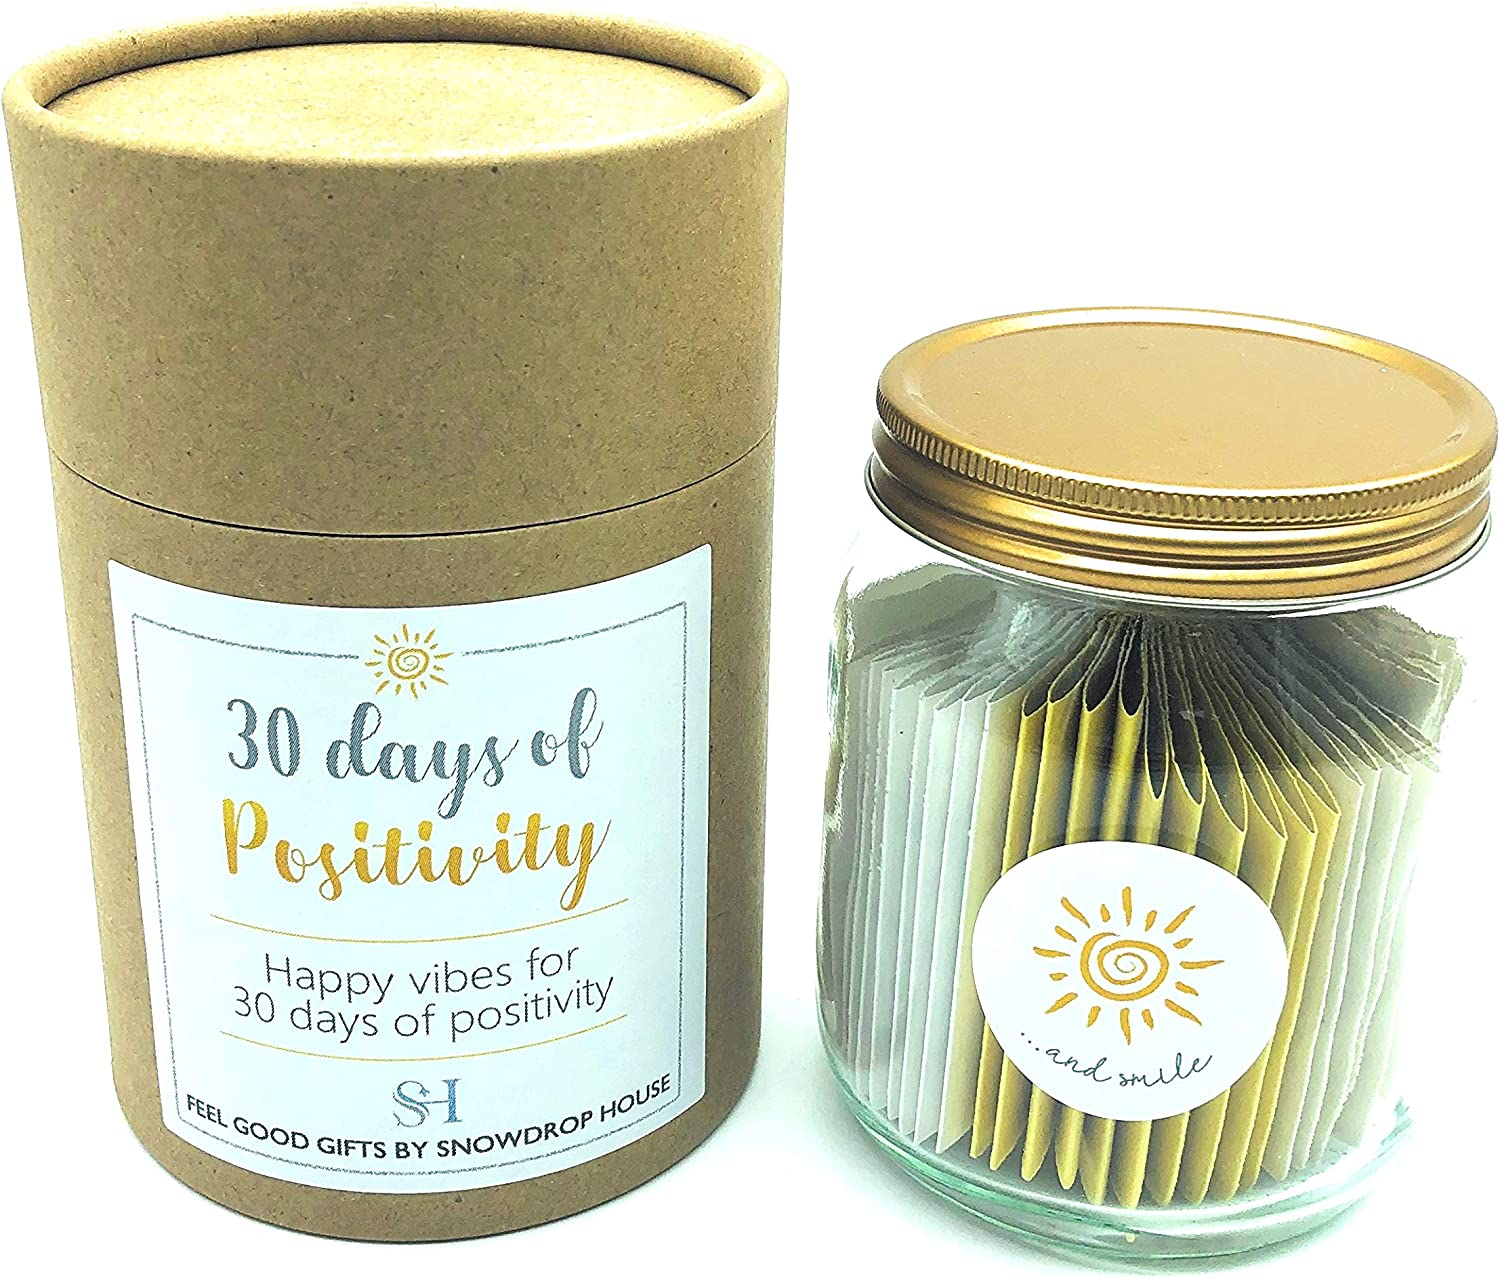 Positivity Unique Gift Jar 30 Days Of Happiness Affirmations Positive Vibes Happiness Tasks Positive Thinking Friendship Inspirational Powerful Thoughts Smiles Kindness Jar Amazon Co Uk Kitchen Home